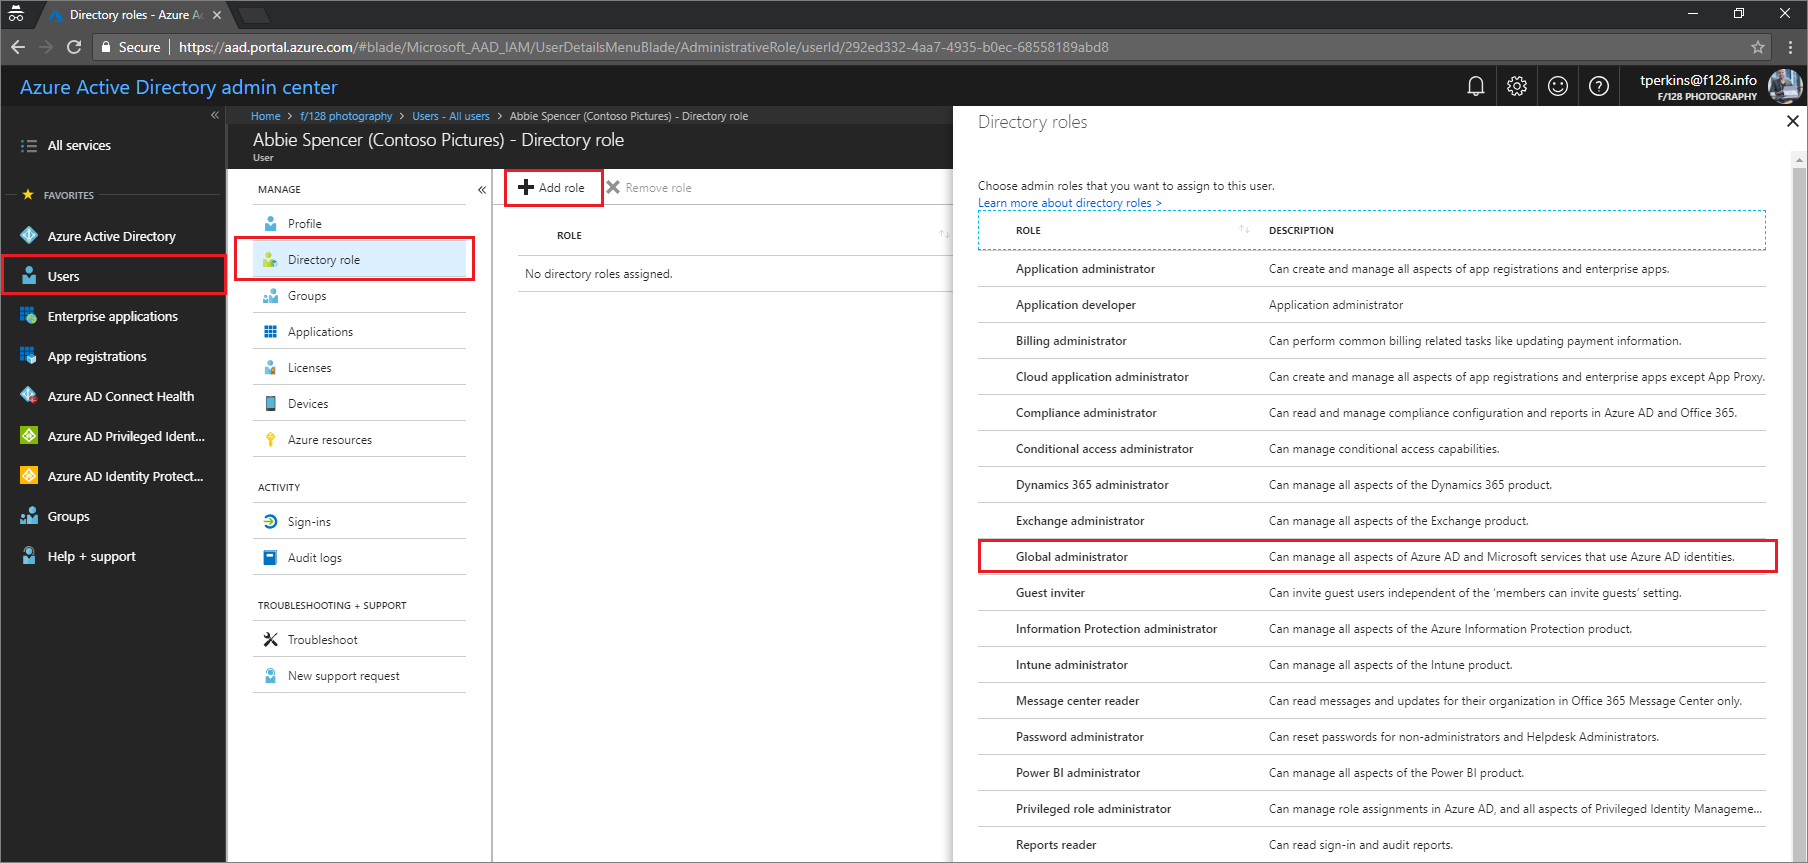 How to add a user in azure - Opening Azure Ad Admin Center